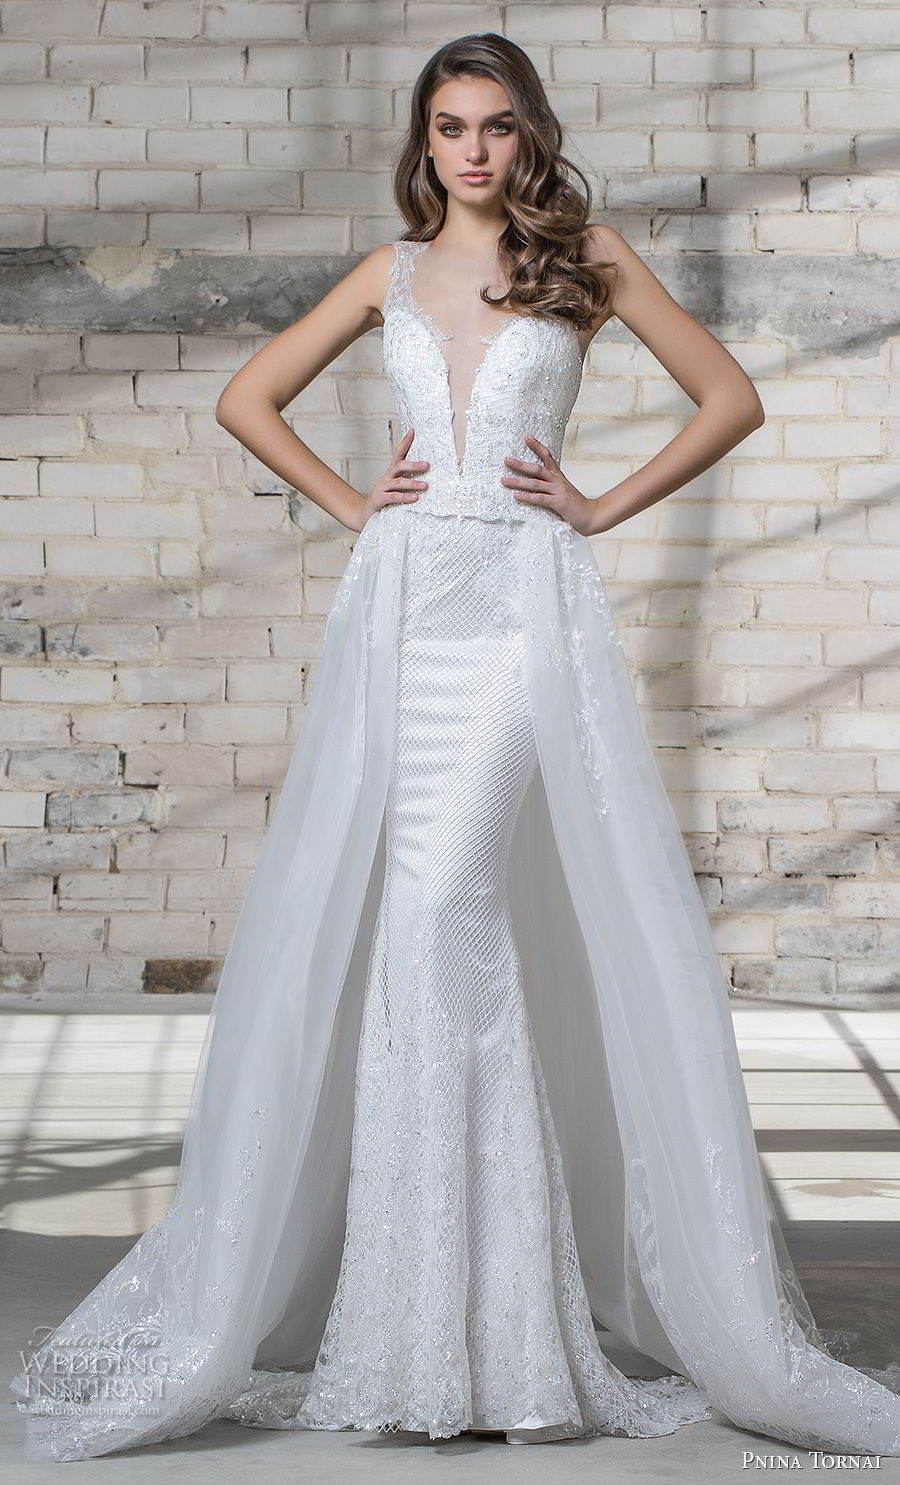 pnina tornai 2019 love bridal embellished strap deep plunging sweetheart neckline full embellishment elegant fit and flare wedding dress a line overskirt chapel train (17) mv